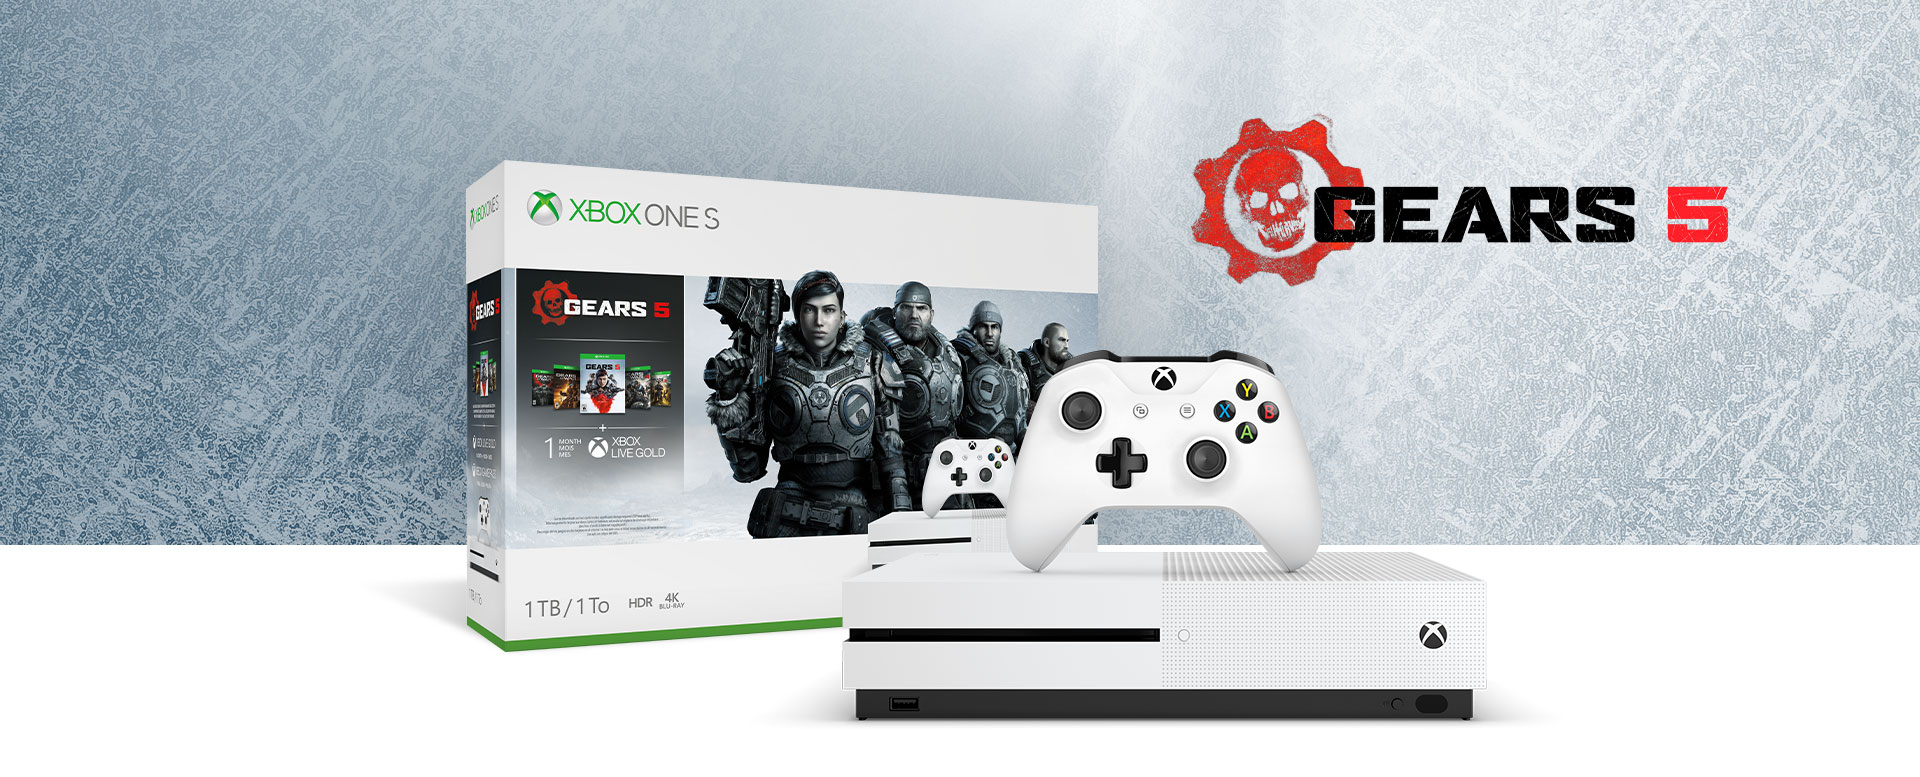 Xbox One S console in front of a hardware bundle box featuring Gears 5 art